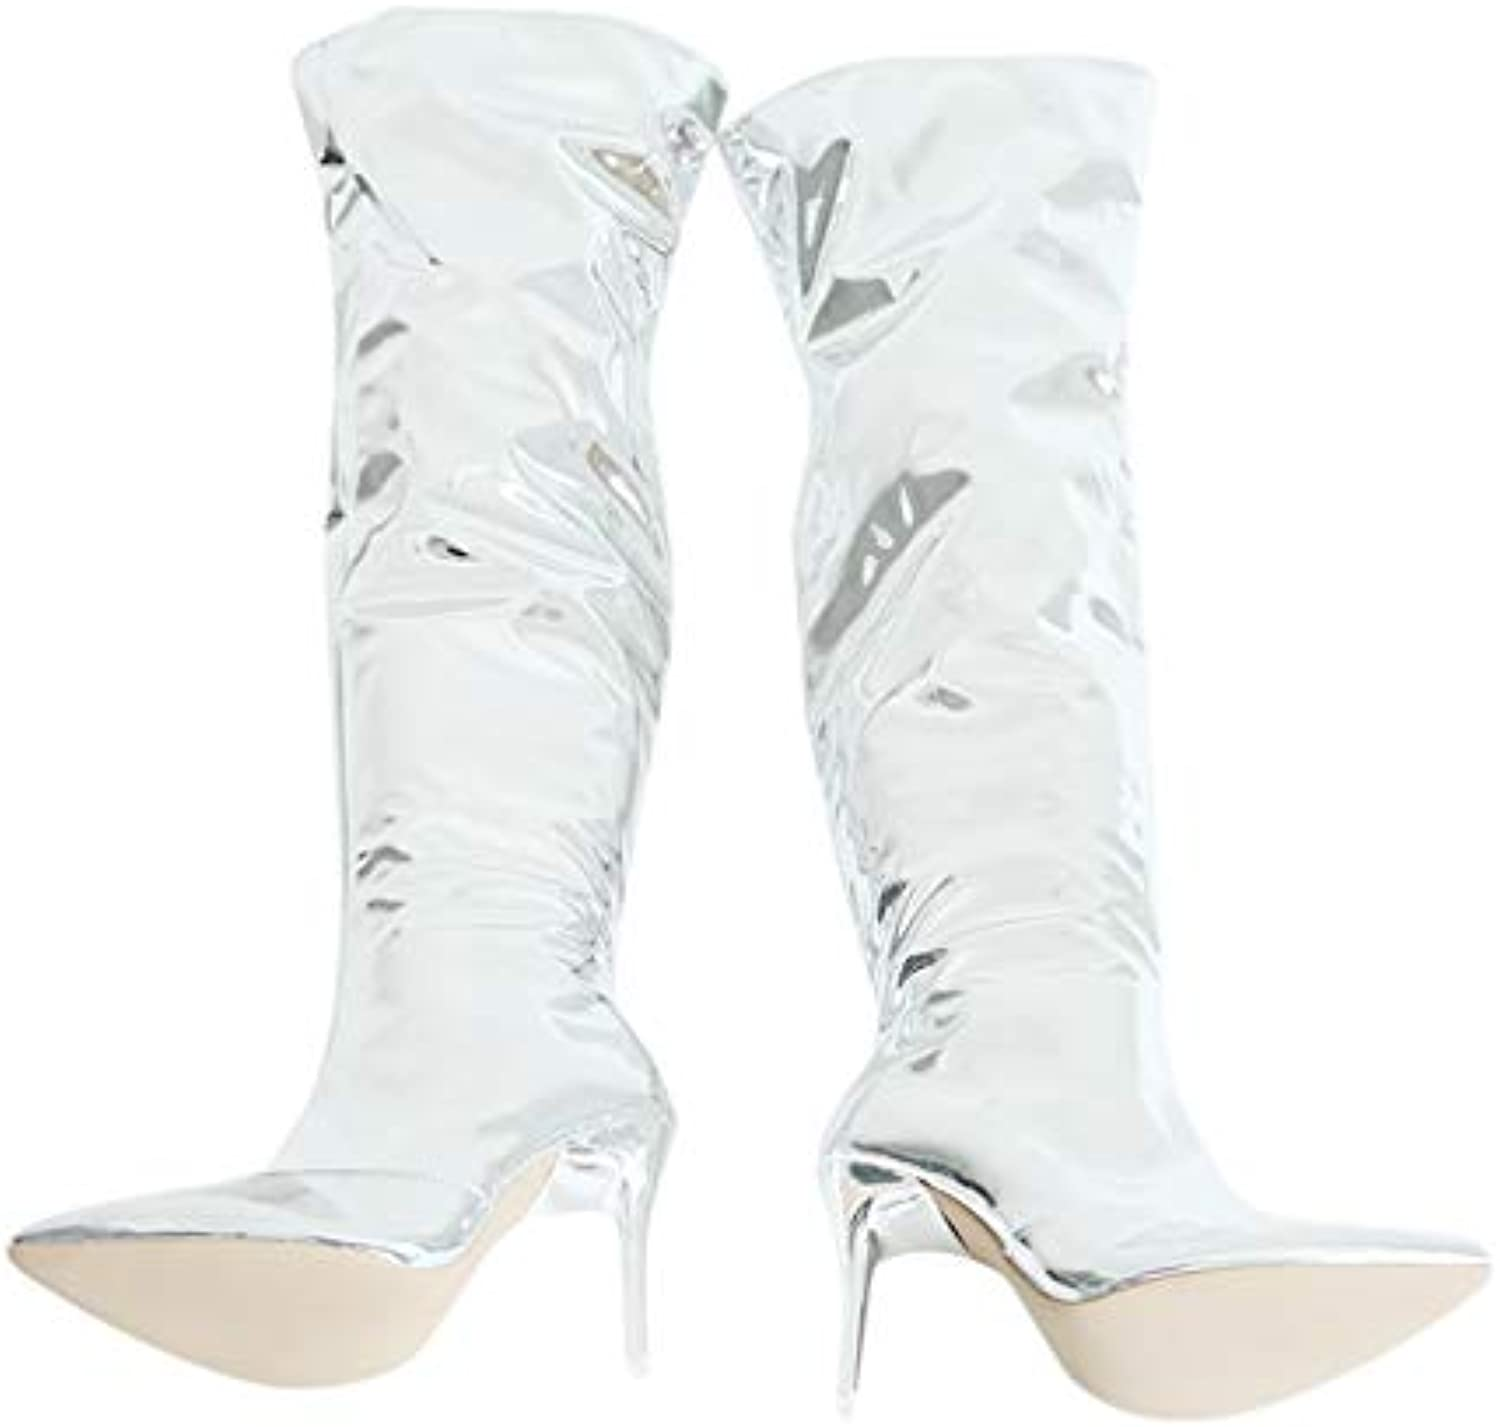 T-JULY Women Show Pointy Toe Club Party shoes Thin High Heels Over The Knee Long Thigh High Boots